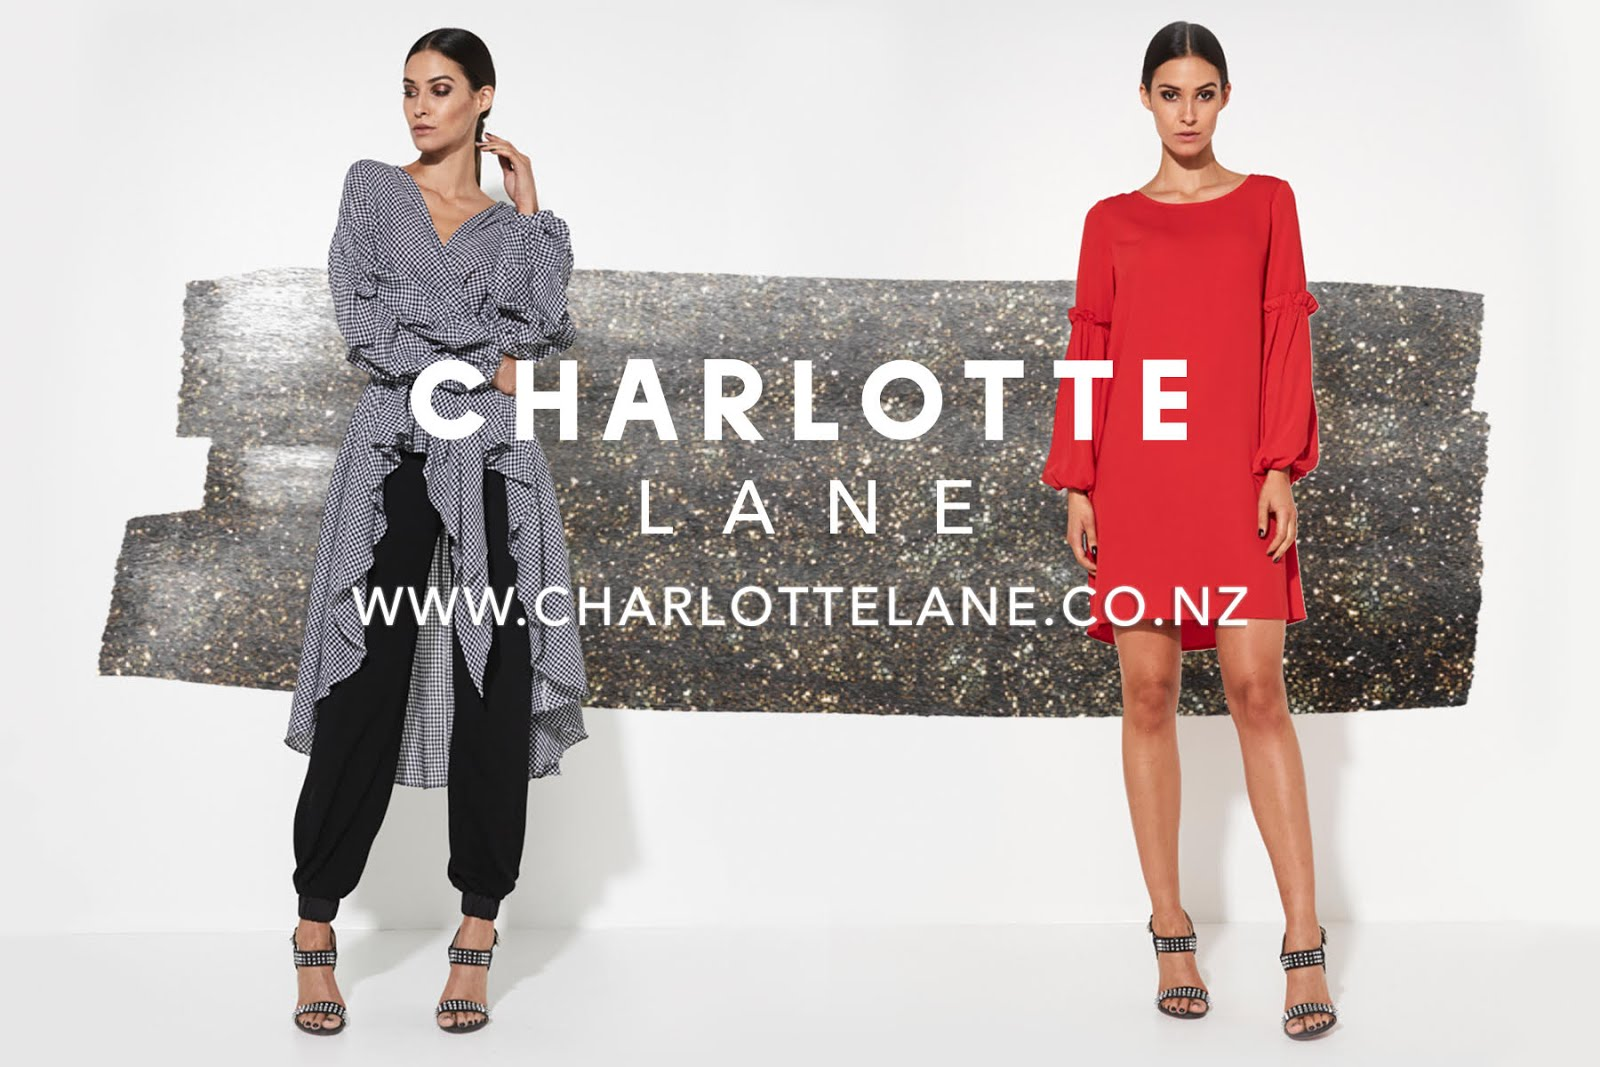 Charlotte Lane Clothing